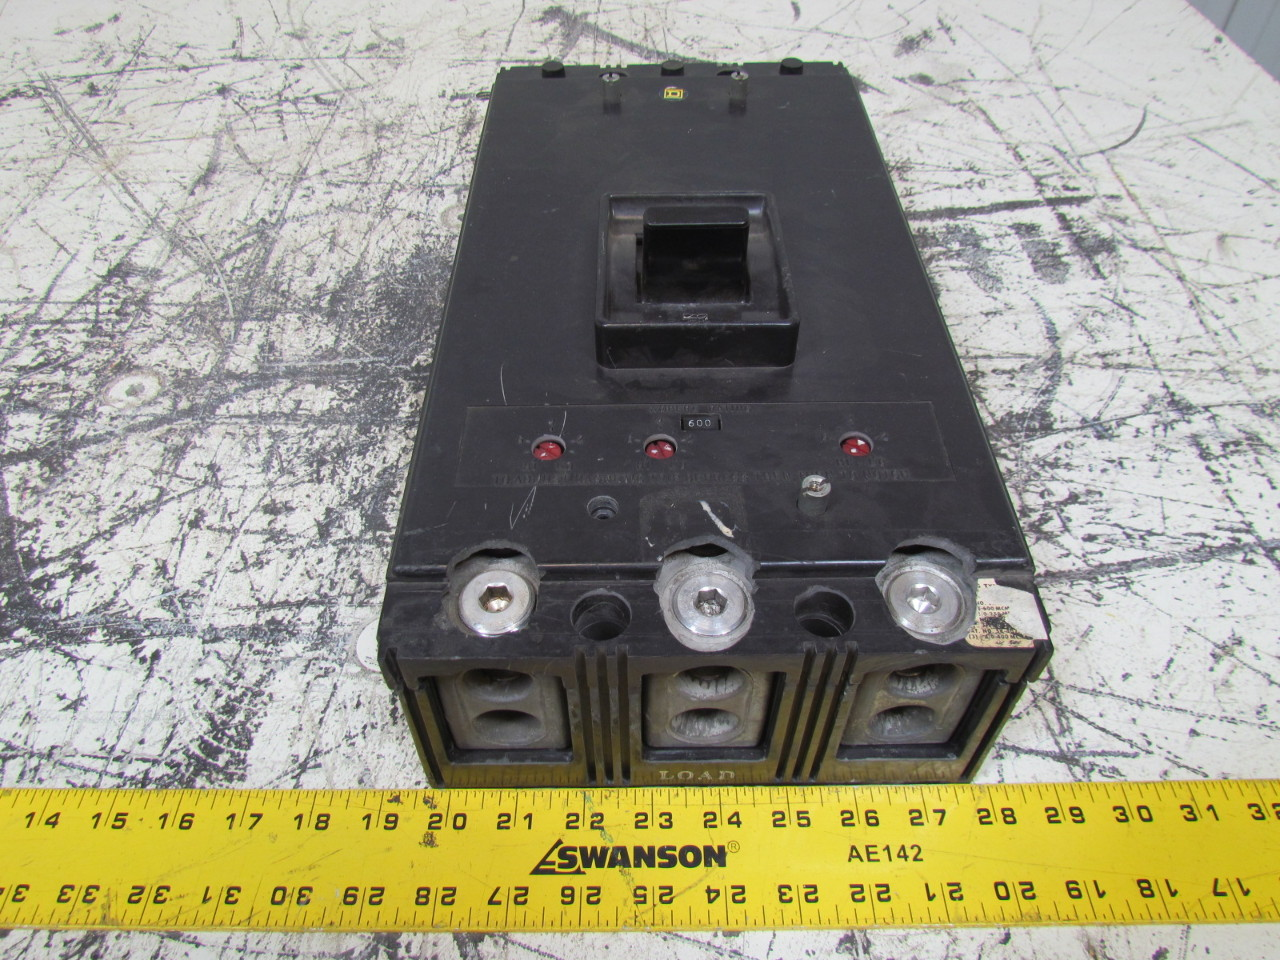 Snap Square D Ma 3800 F Circuit Breaker Molded Case 600v 600amp 3 Zinsco Breakers New Used And Obsolete Breakerconnection Pole 800amp